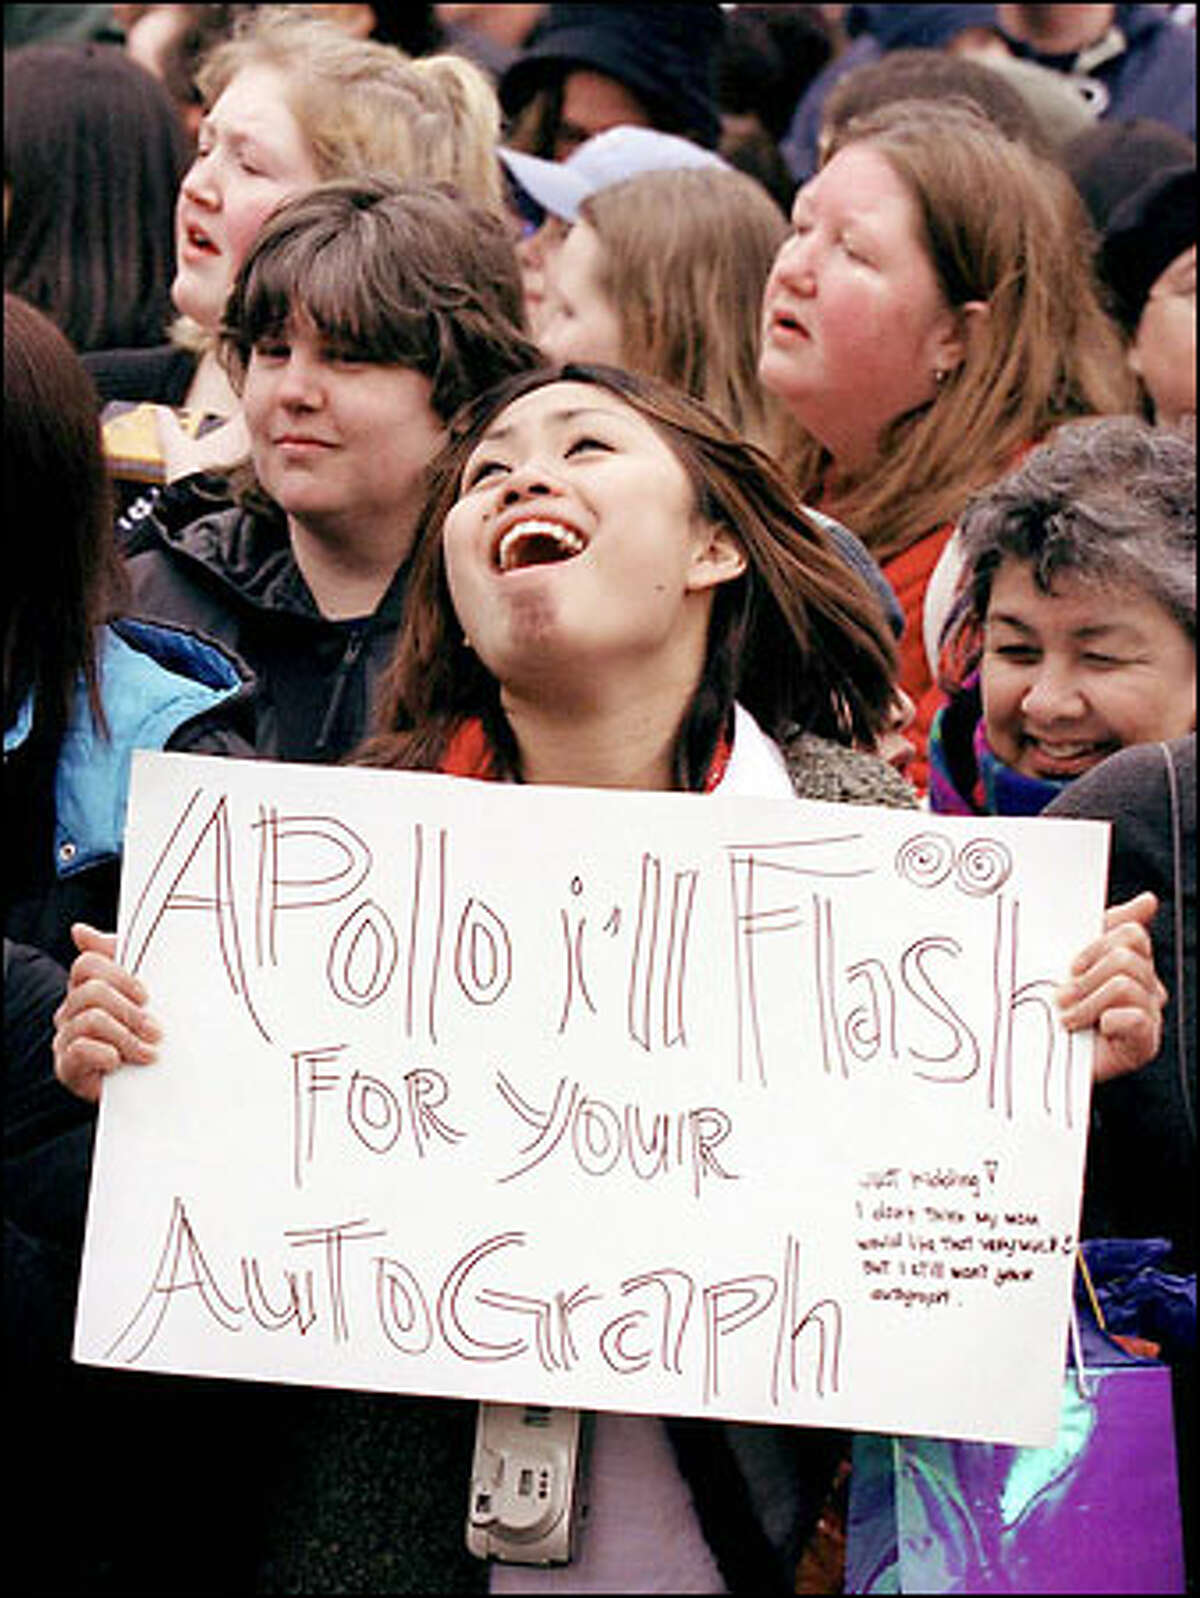 Roseann Cabrito, 15, of Seattle waves a sign in hopes to get an autograph from Apolo Ohno during a rally in his honor at Westlake Park.